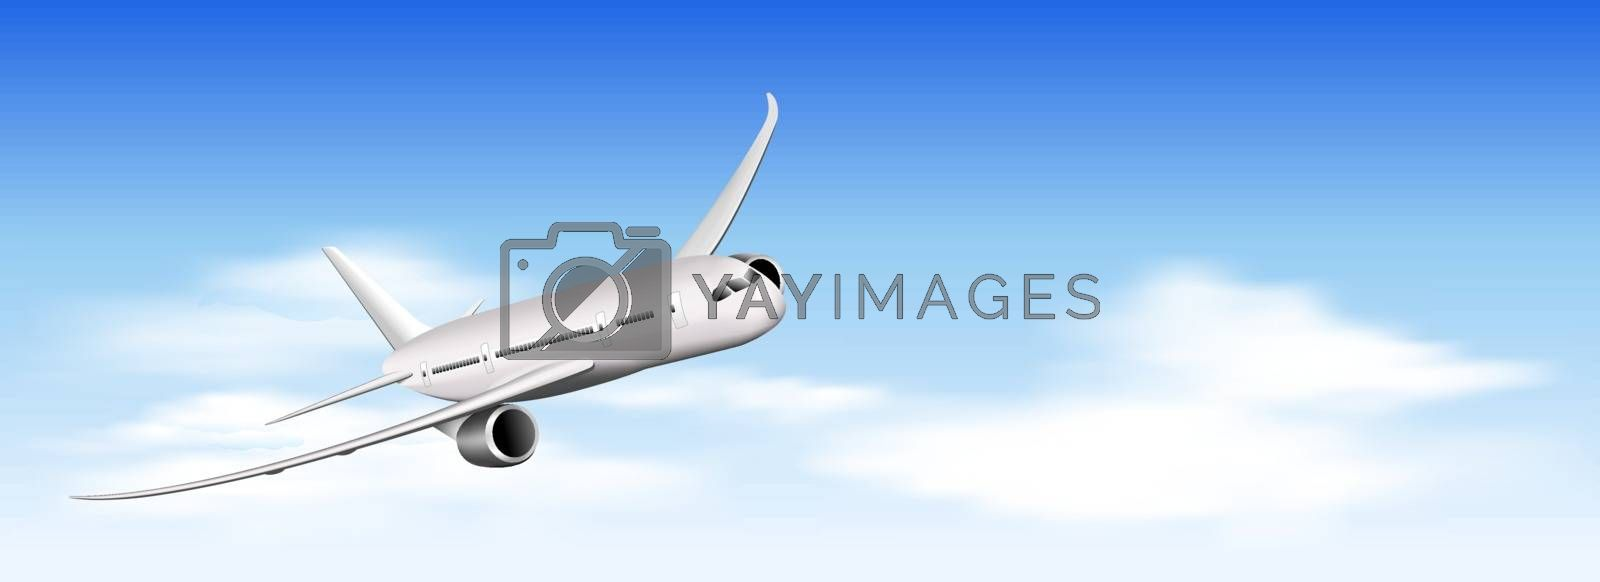 Airplane on a background of blue sky and white clouds. A plane flying in the sky.